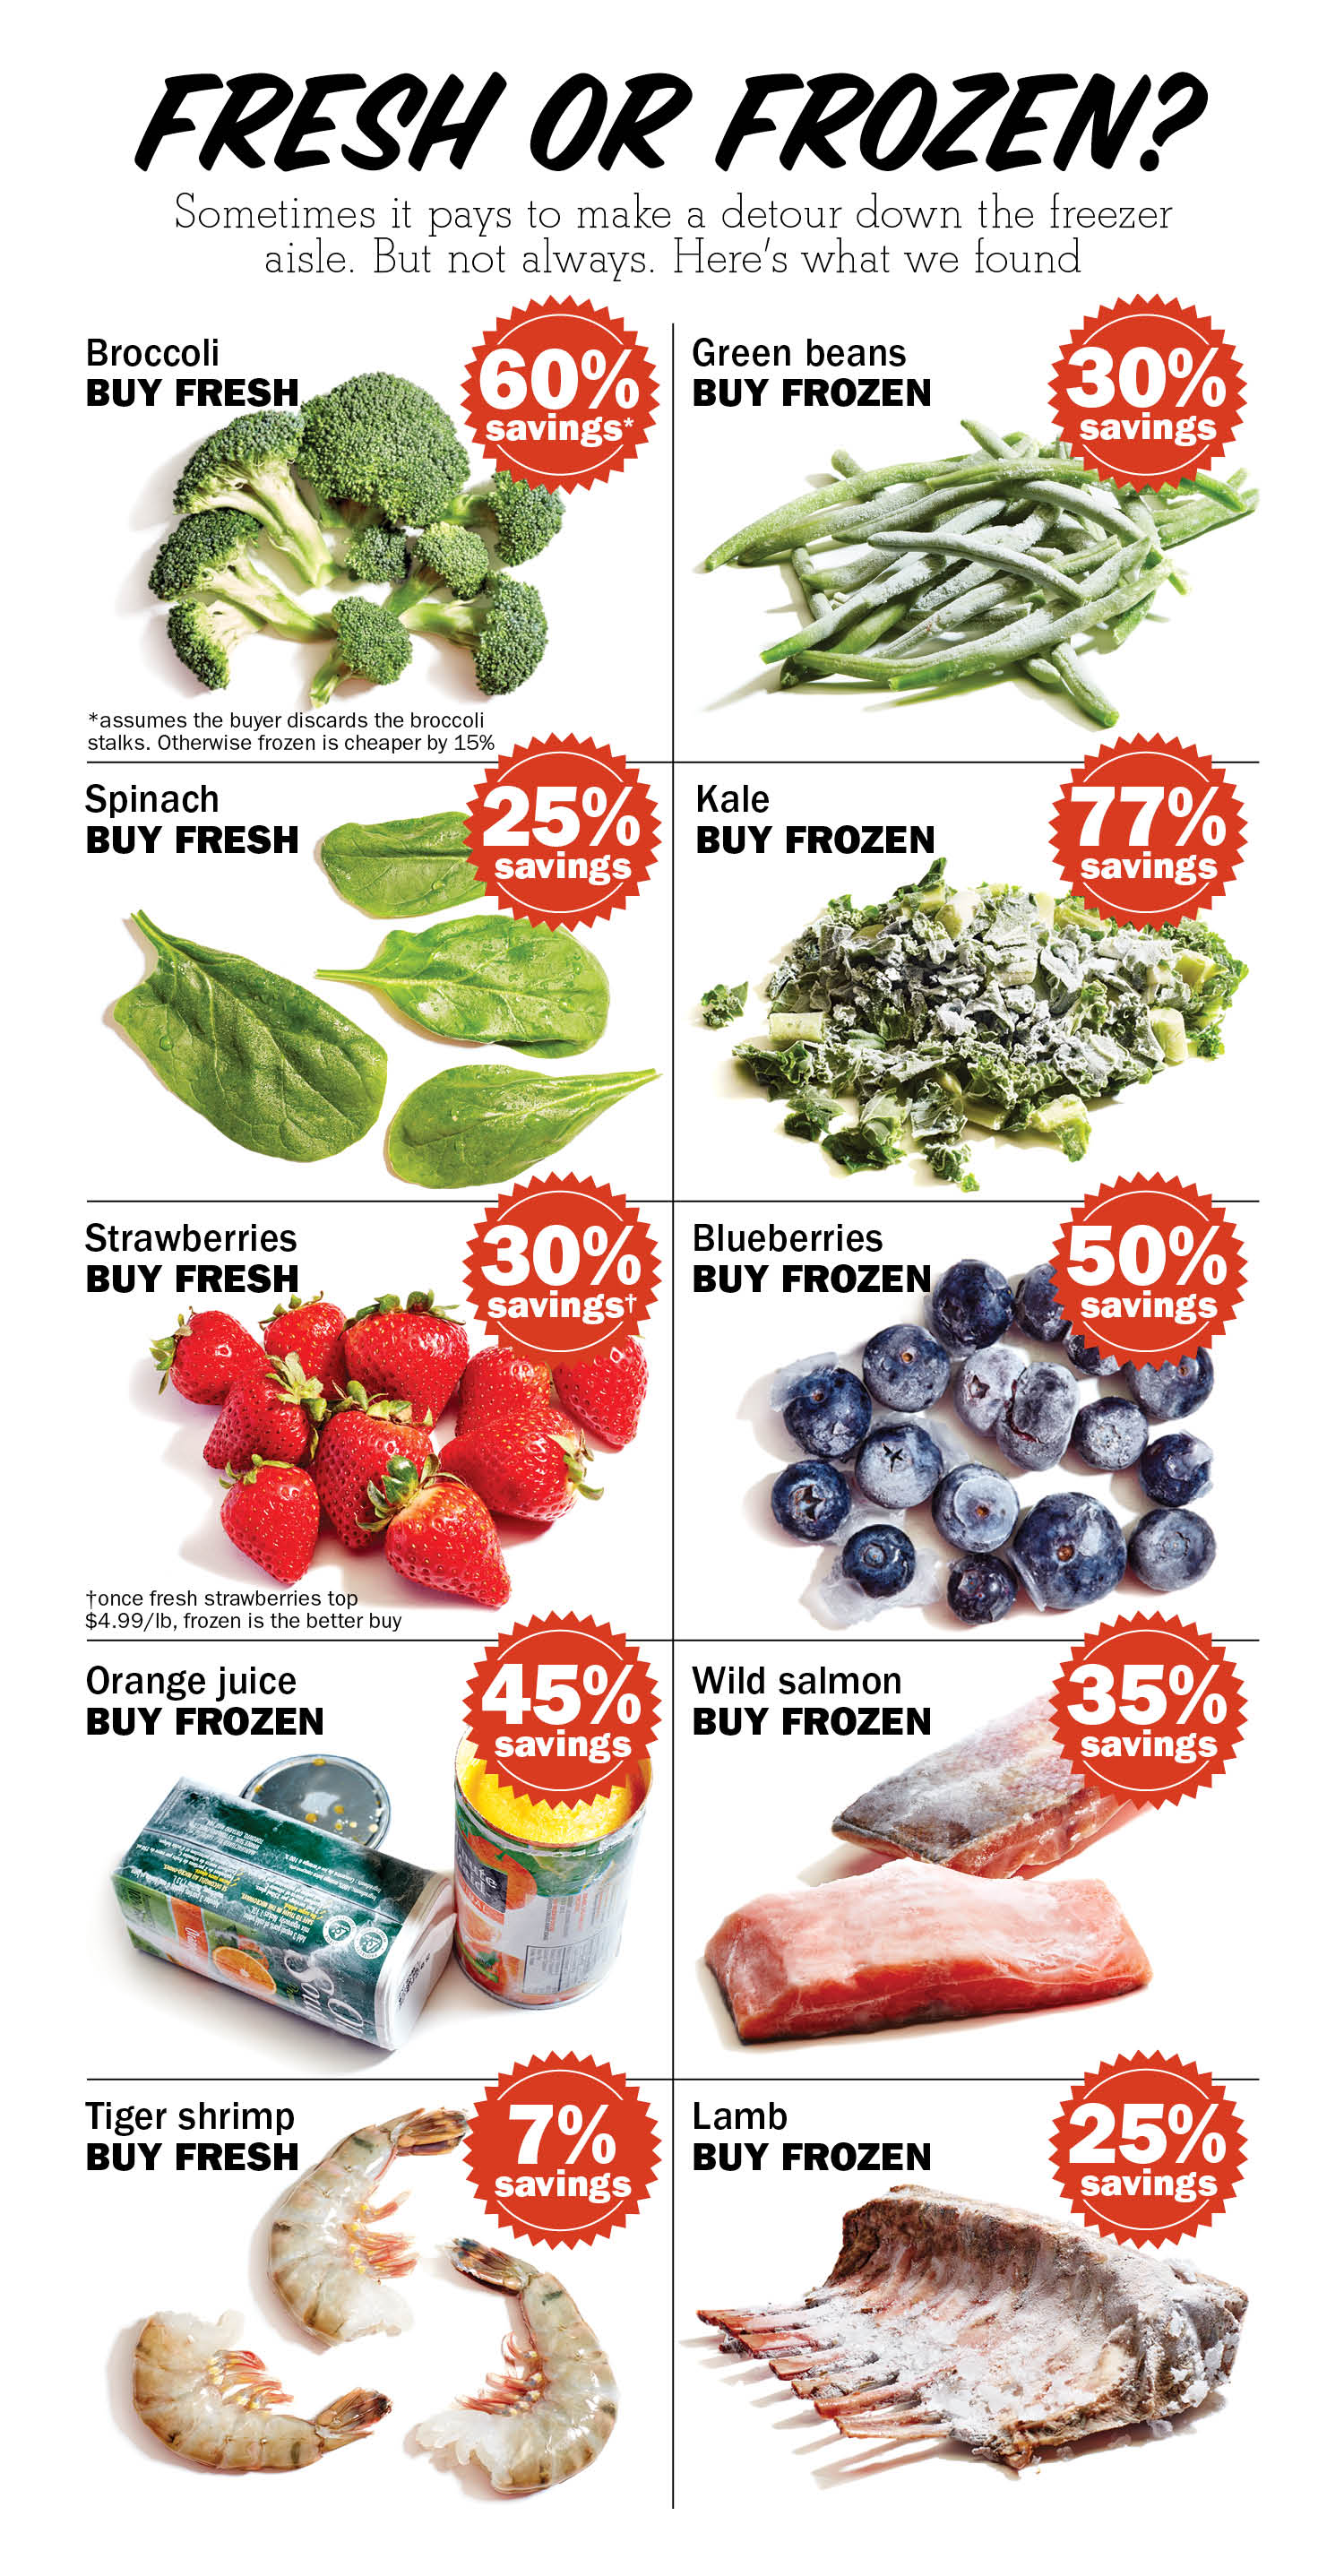 Should you buy fresh or frozen vegetables?